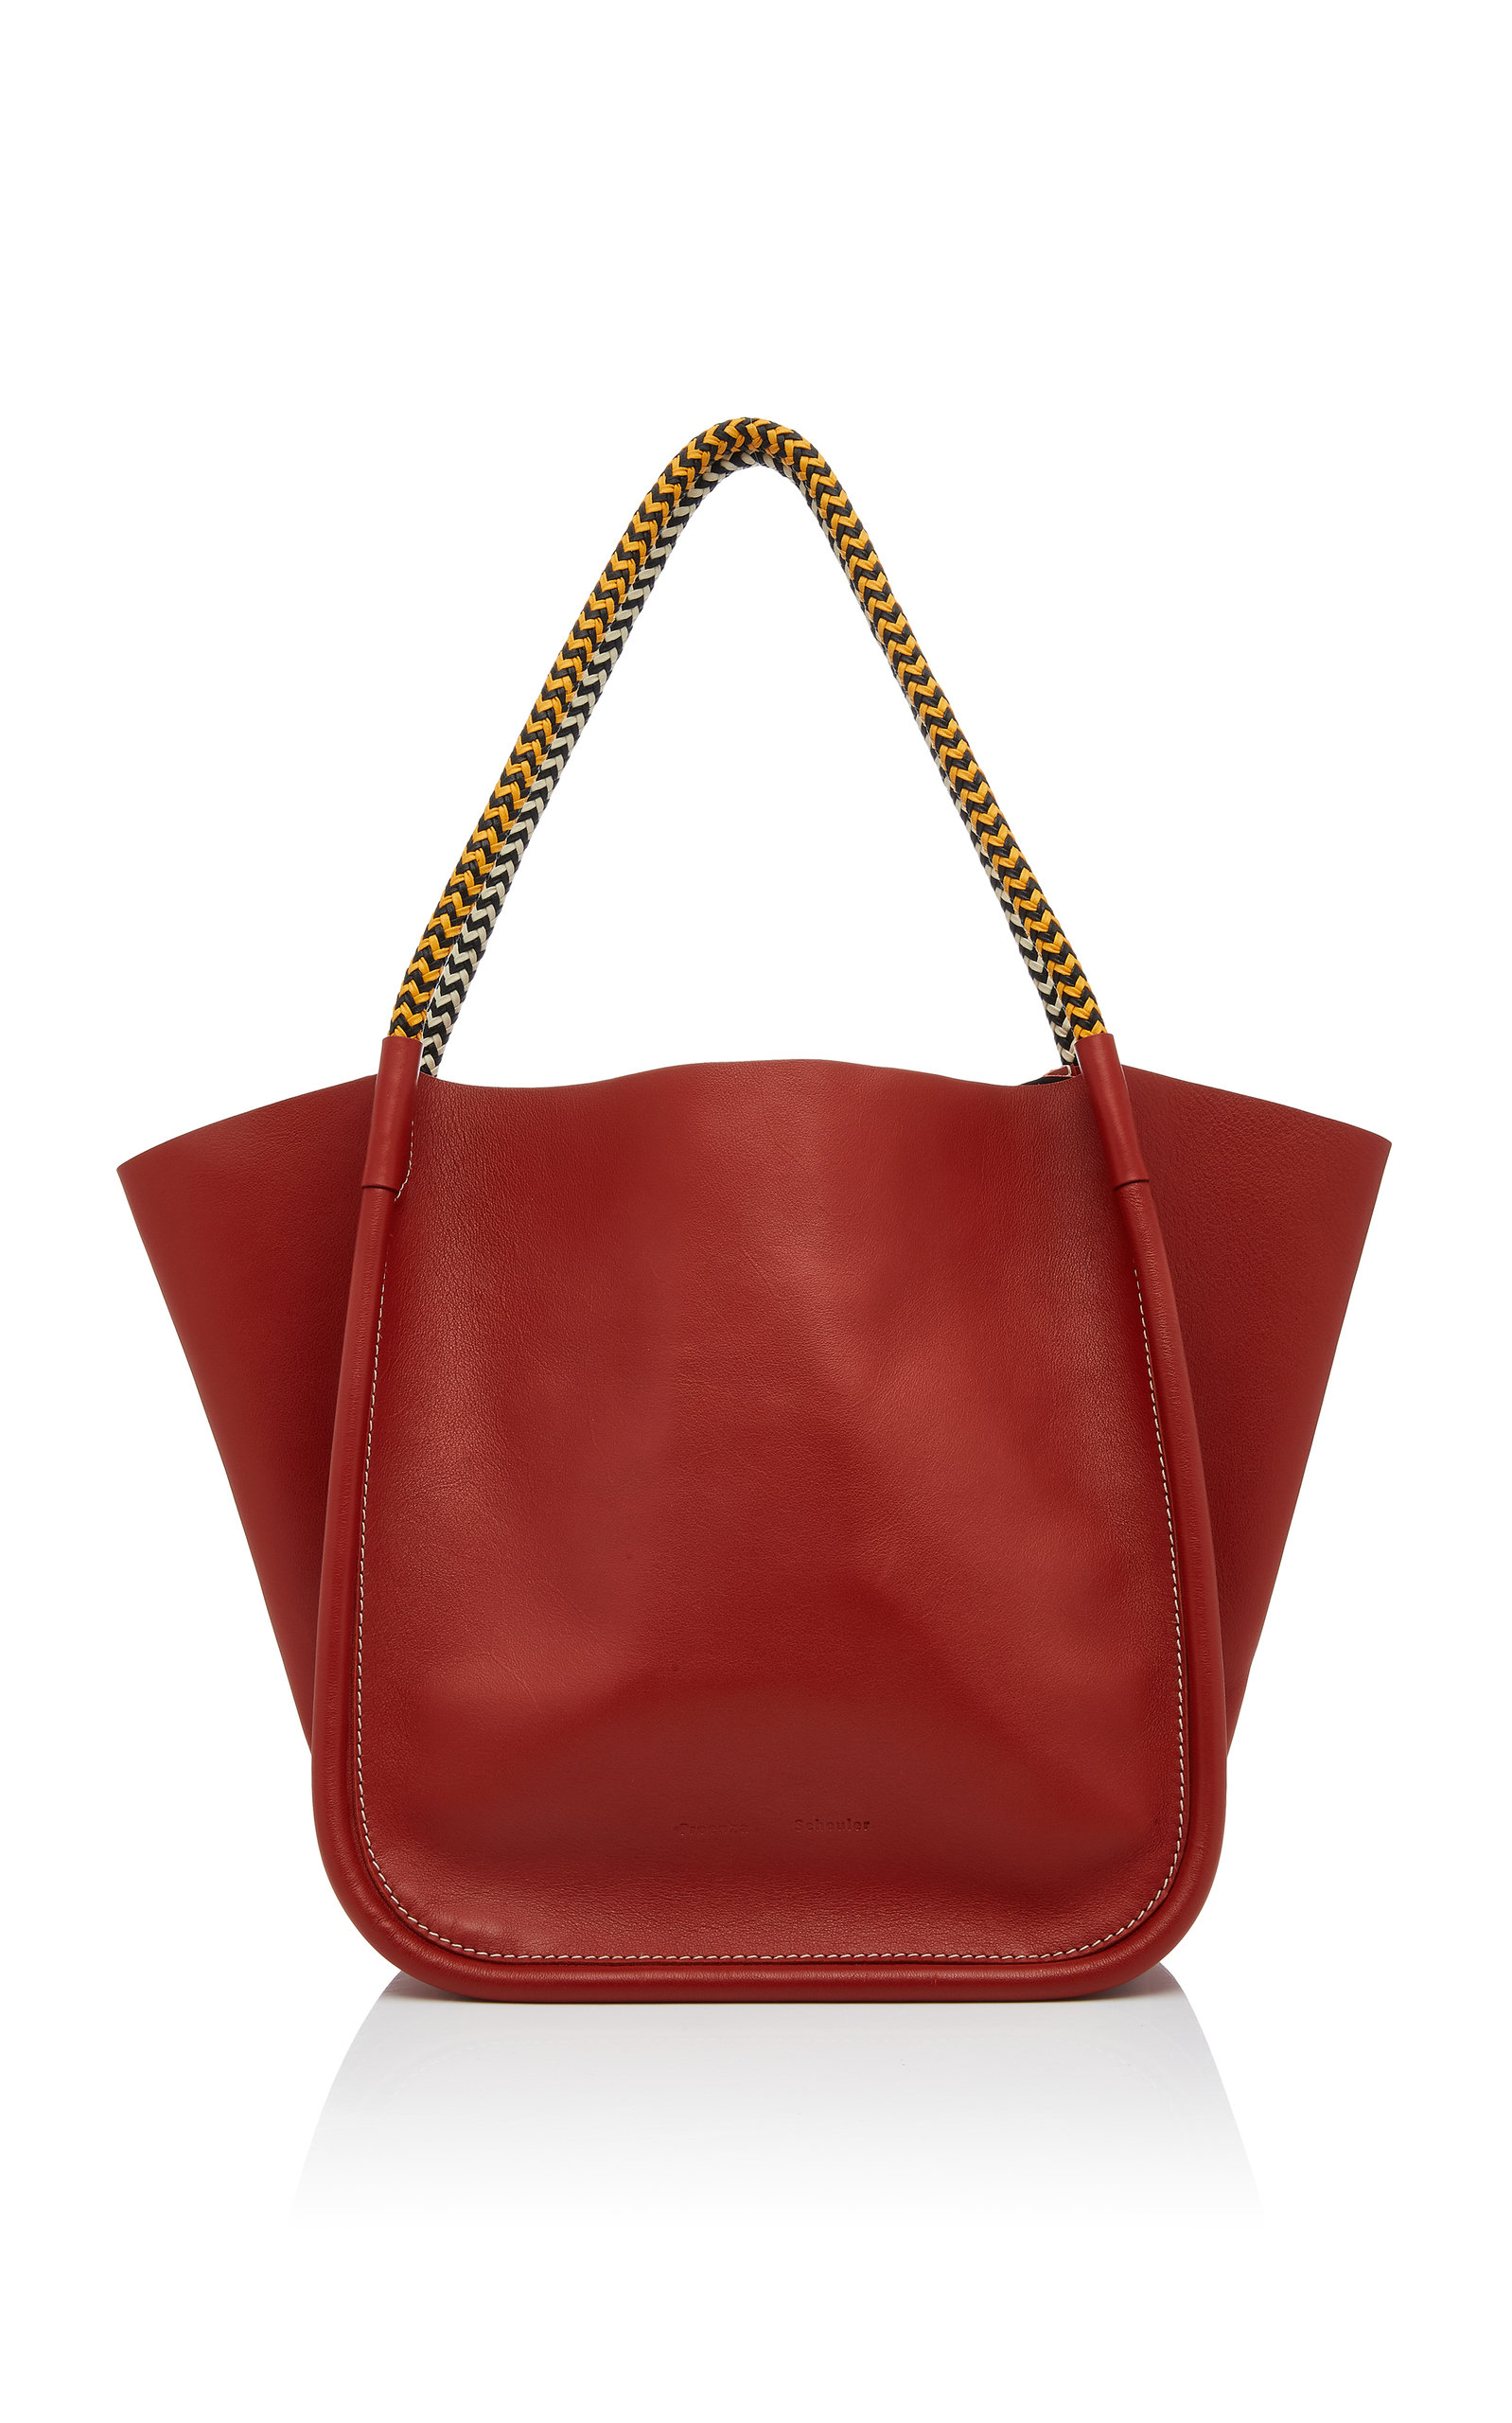 Proenza Schouler Totes L Contrast Handle Leather Tote